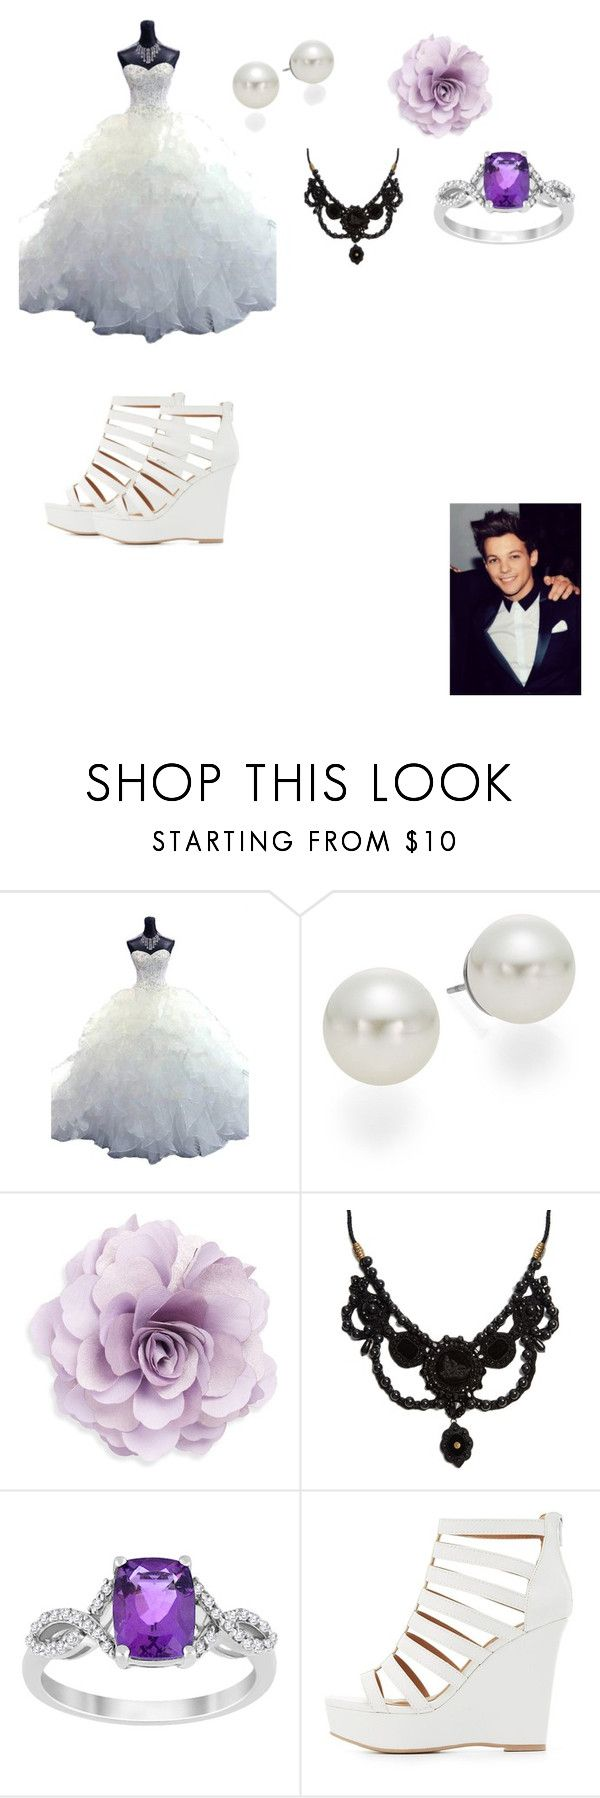 """Louis Tomlinson Wedding Day"" by cheyenneedwards333 on Polyvore featuring AK Anne Klein, Cara, Gucci and Charlotte Russe"